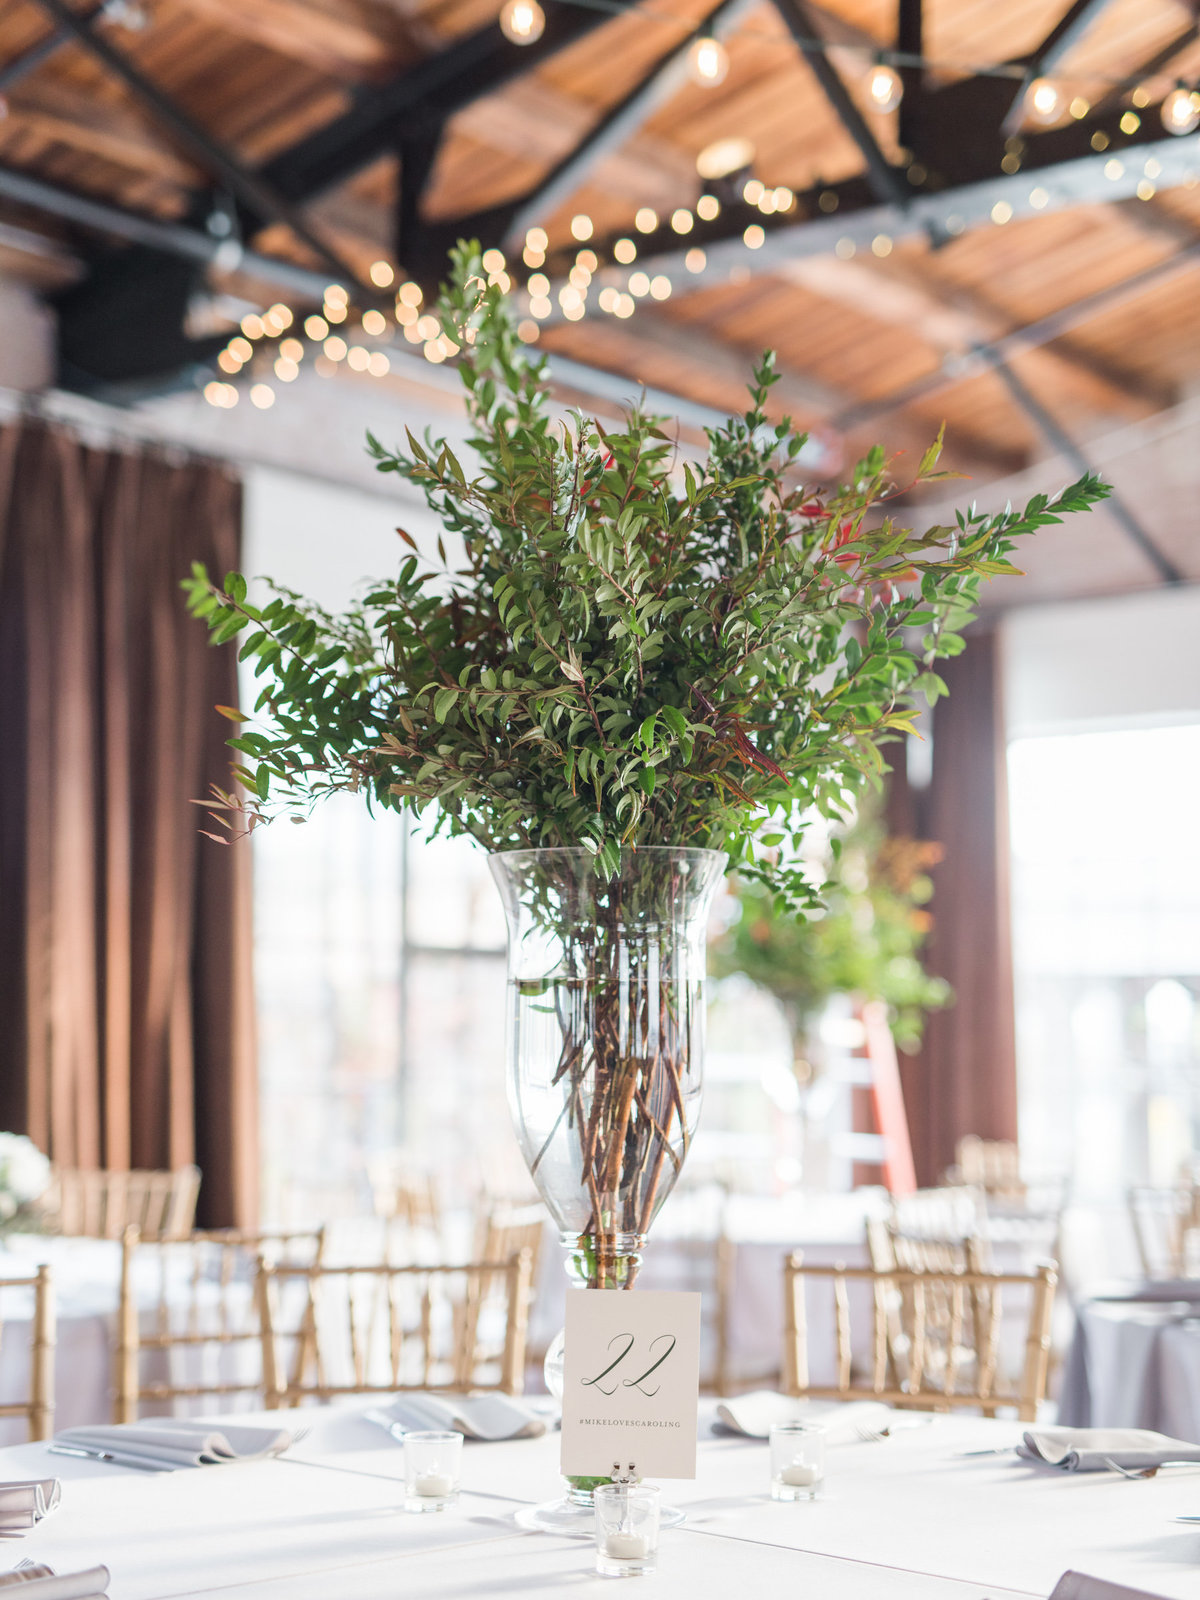 Courtney Hanson Photography - Festive Holiday Wedding in Dallas at Hickory Street Annex-1114